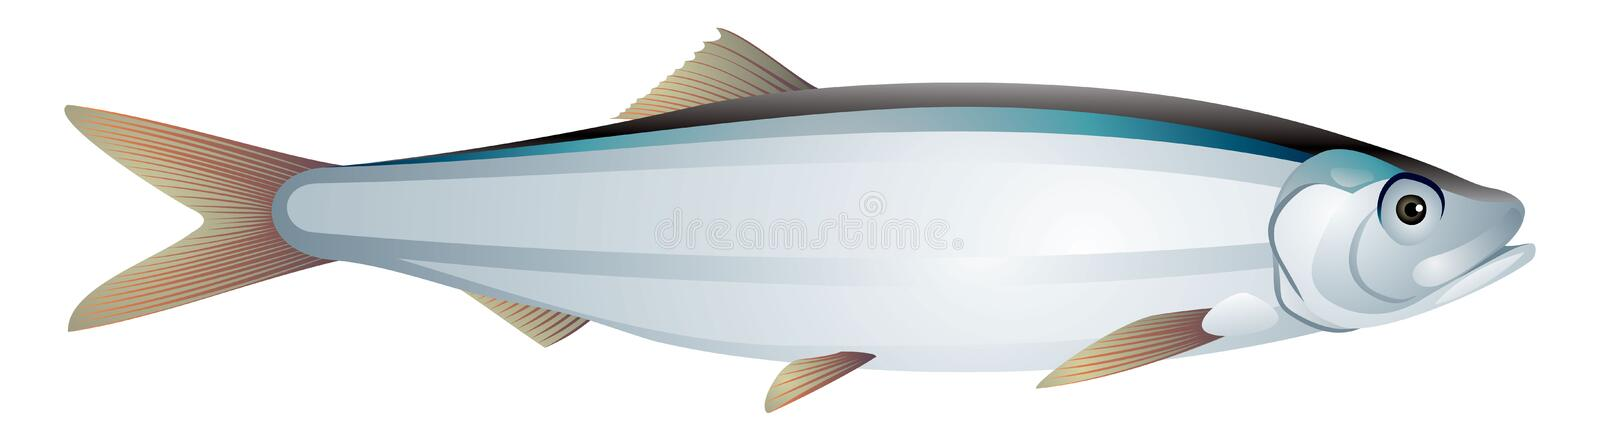 Sprat fish realistic vector illustration stock images